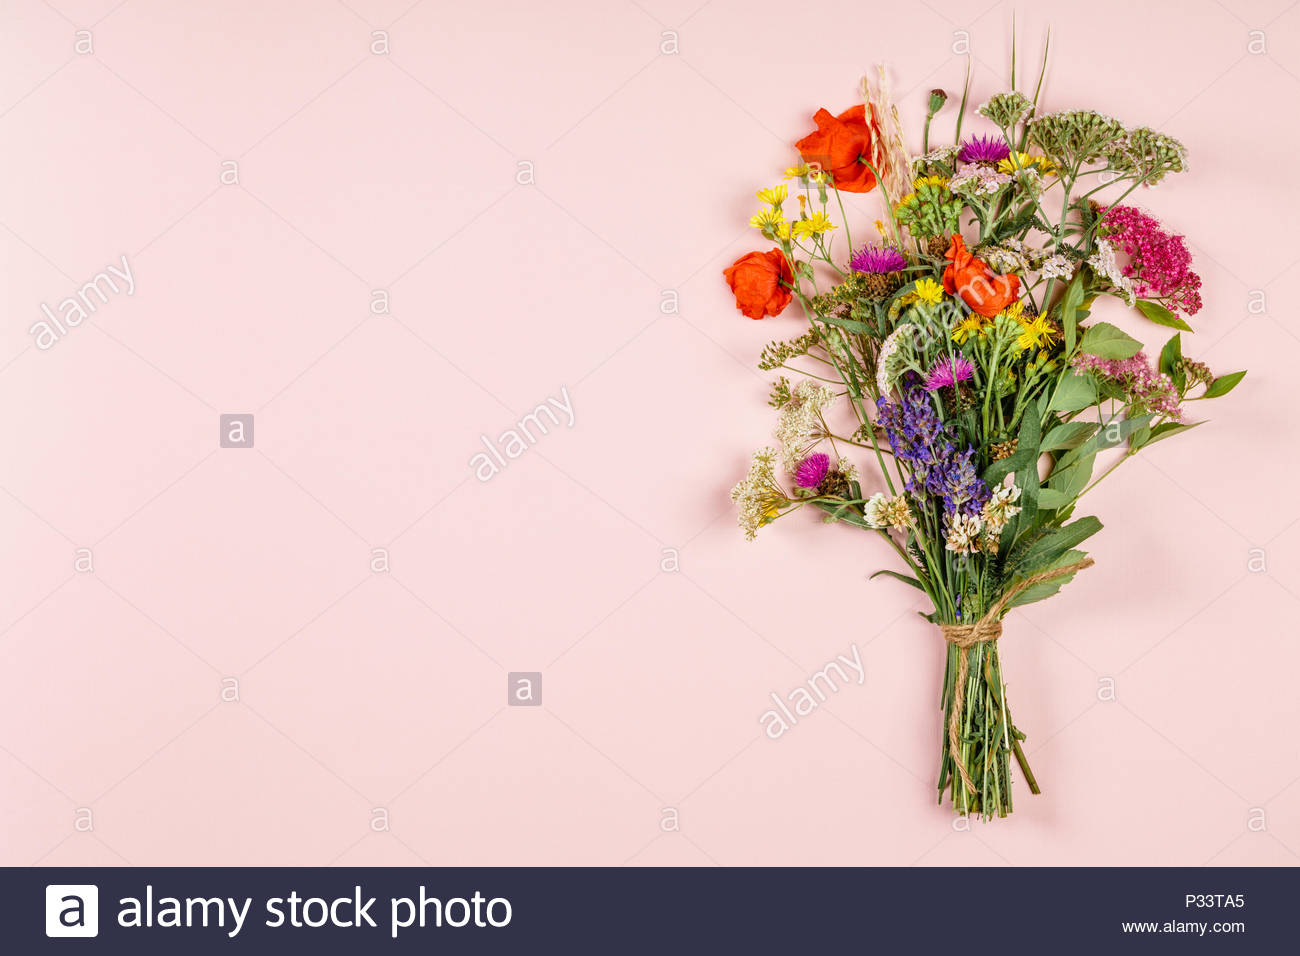 Wild Flower Bouquet On Pastel Color Background Stock Photo